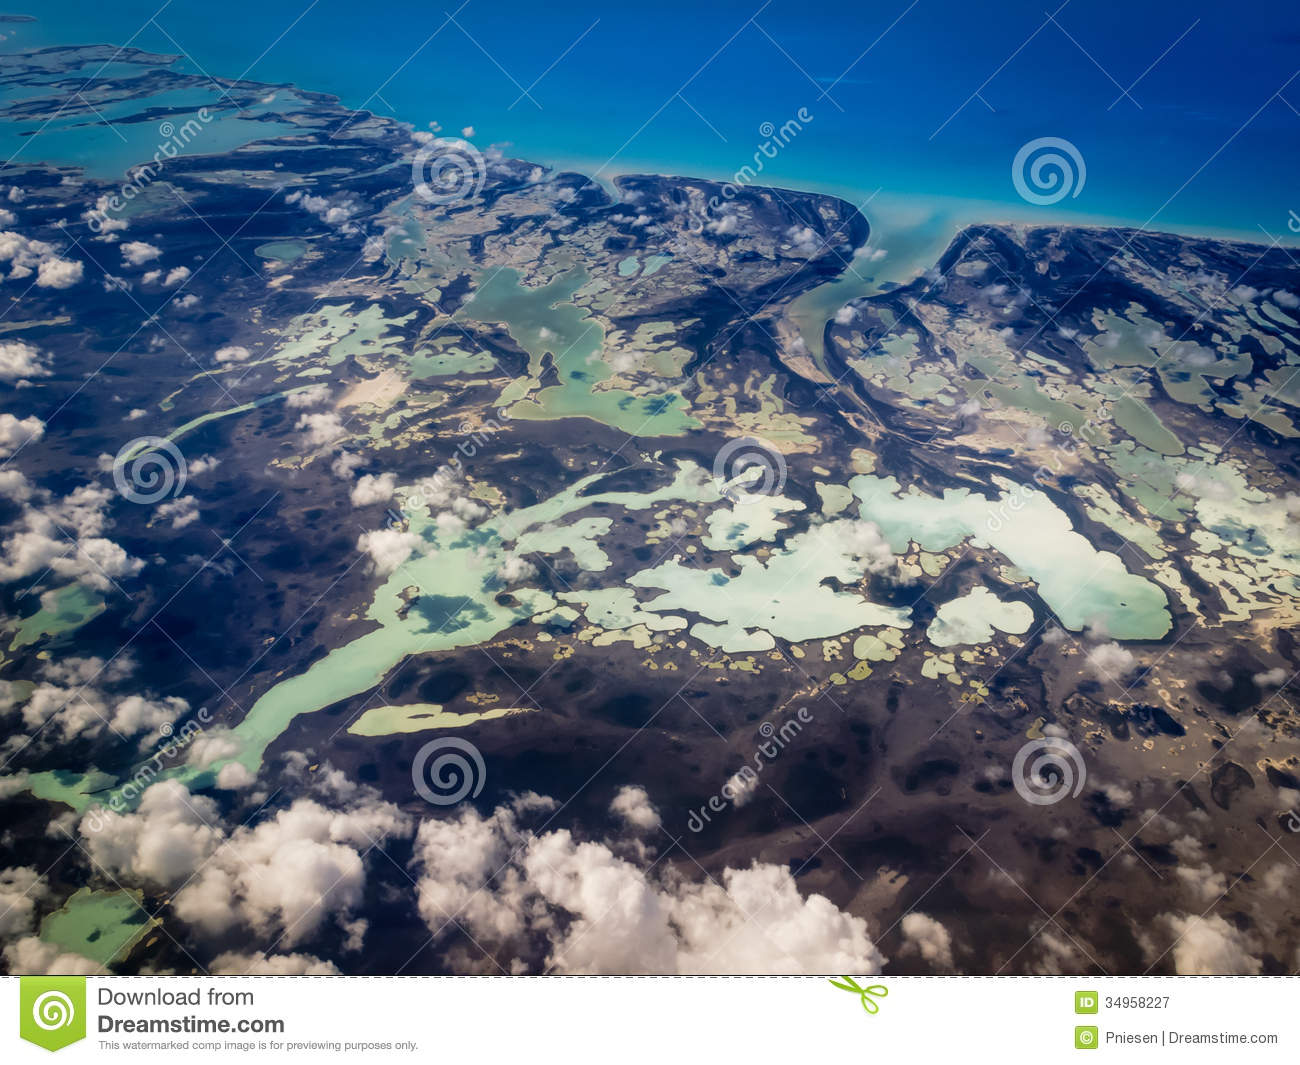 Aerial view of Caribbean various hues of greens and blues marbleized by land contours